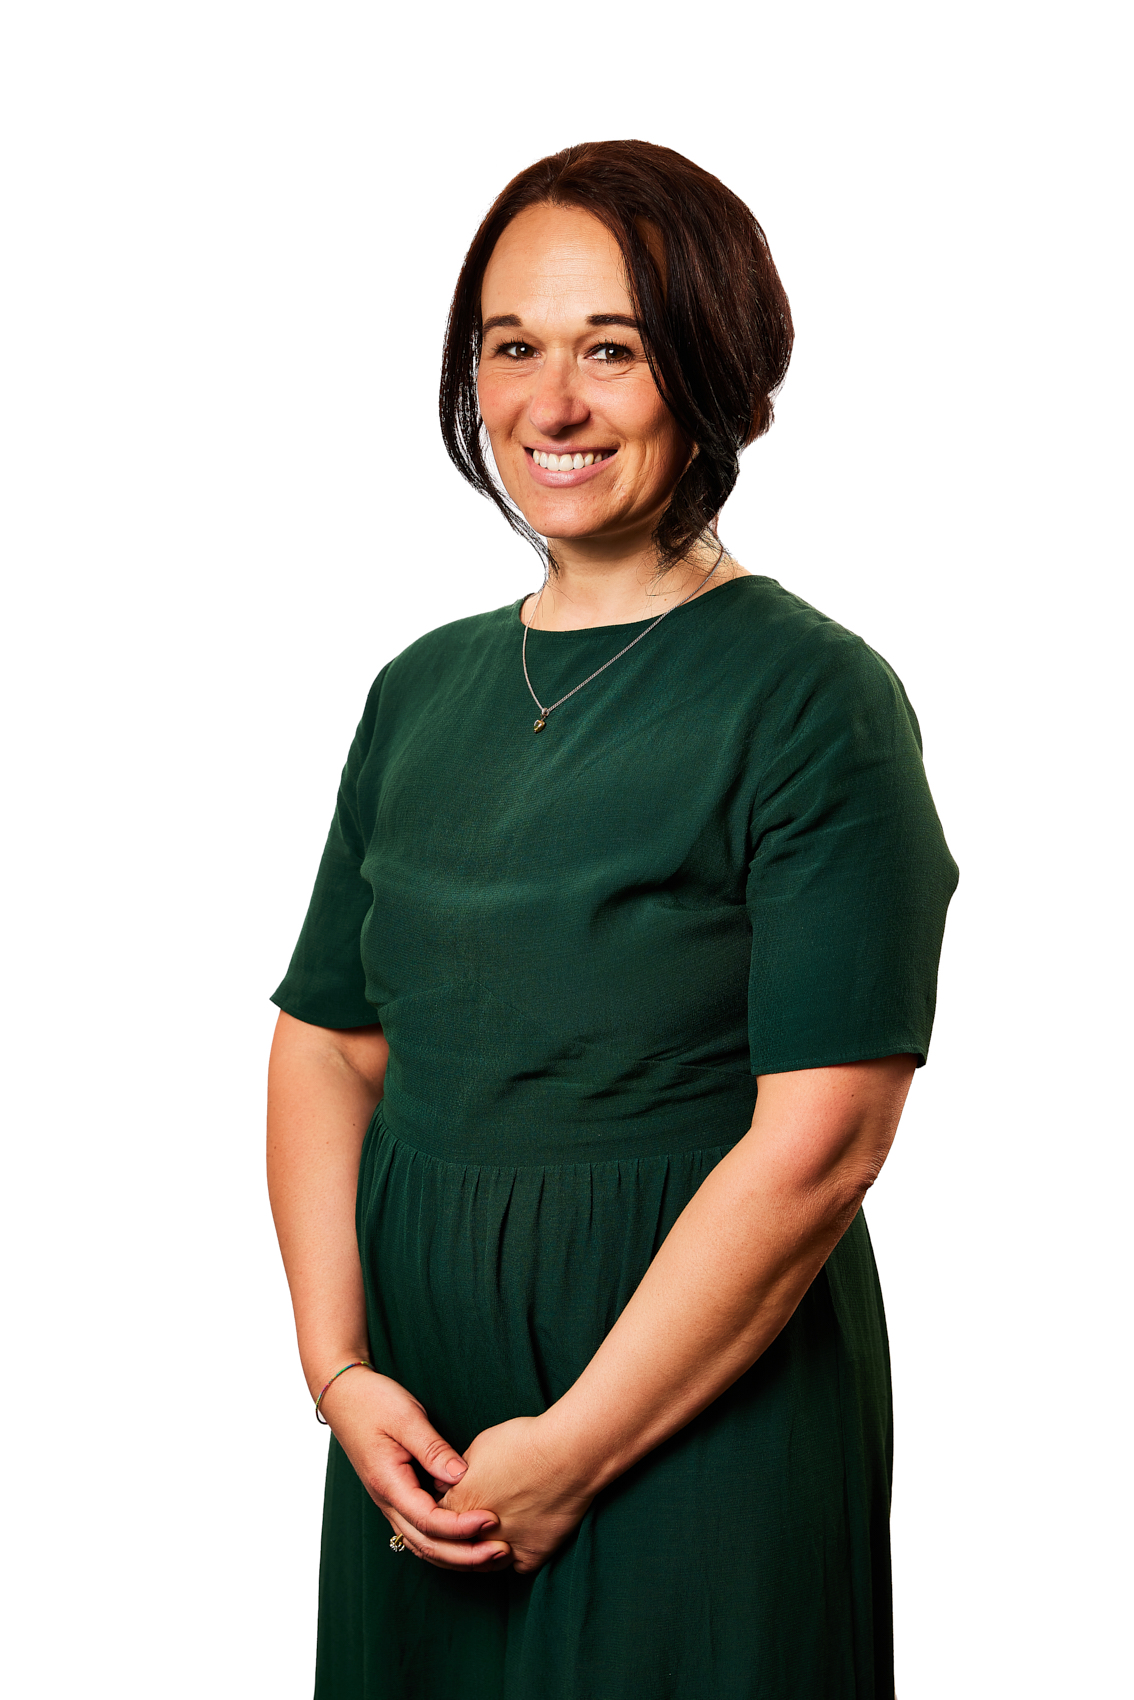 Kelly Corson - Legal Practice Assistant in Leeds